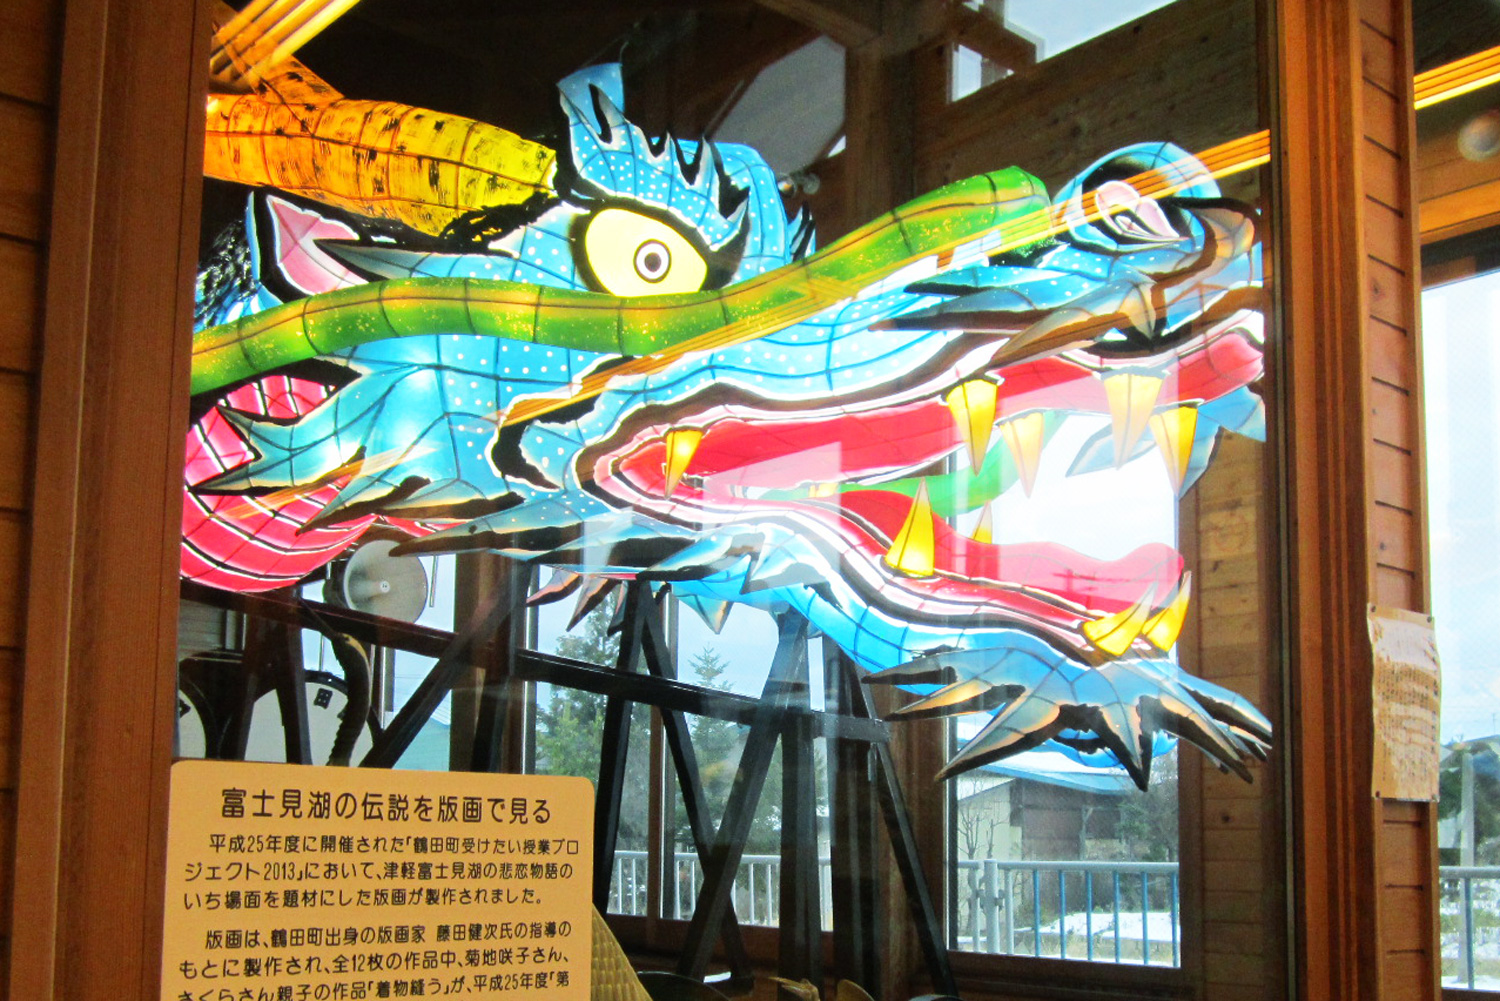 The head of the legendary Dragon ship that was the motif of the Tsugaru Fujimi Lake great power